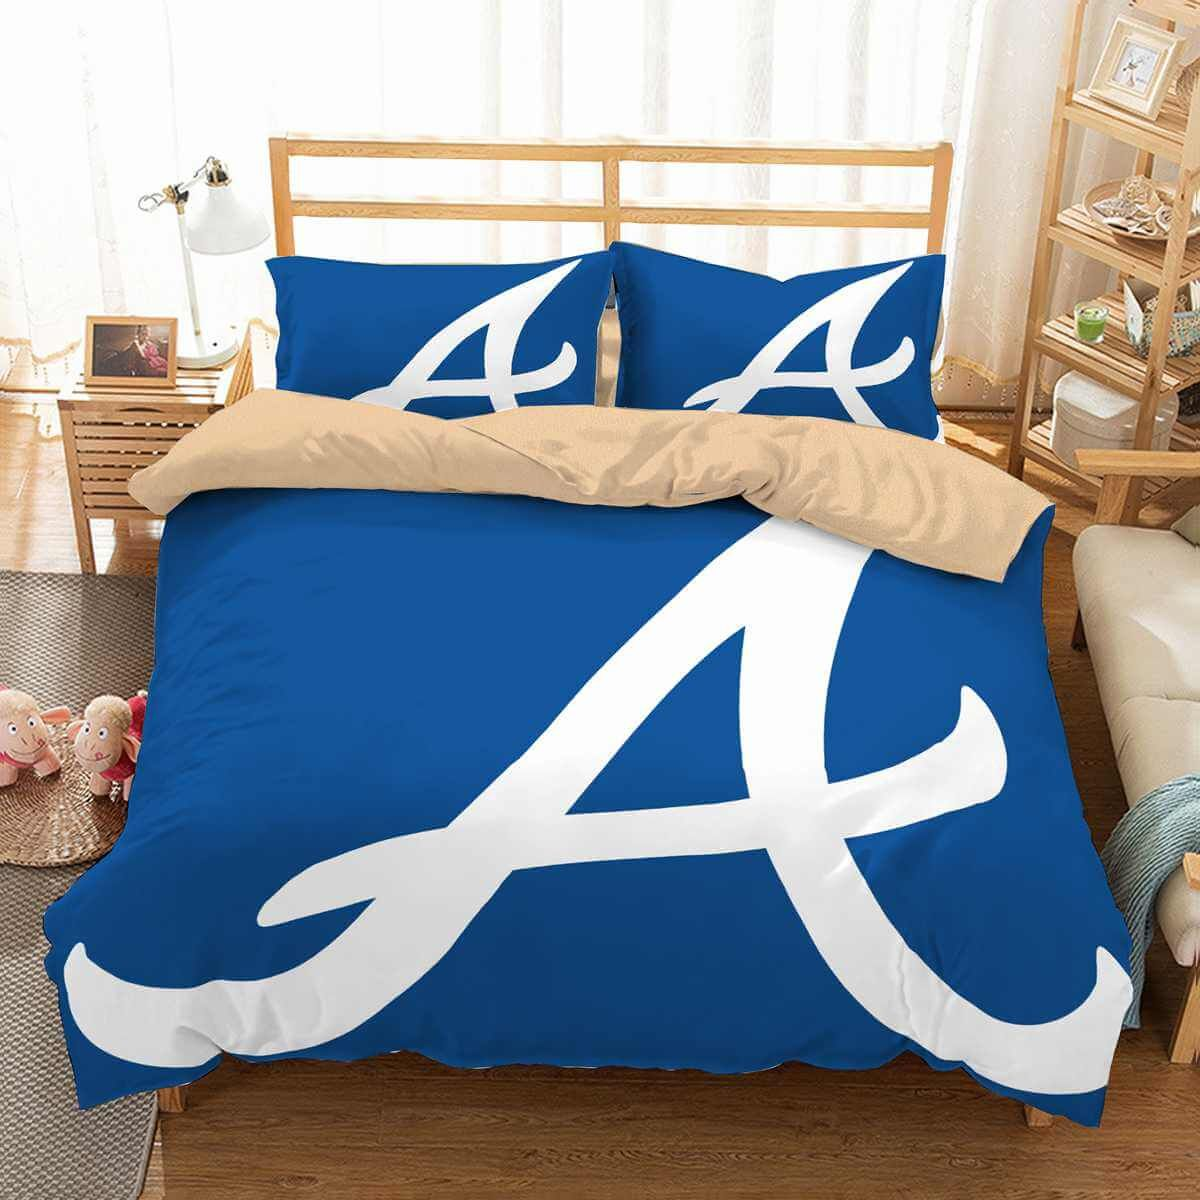 3d Customize Atlanta Braves Bedding Set Duvet Cover Set Bedroom Set Bedlinen Custom Bed Luxury Bedding Sets Bedding Set